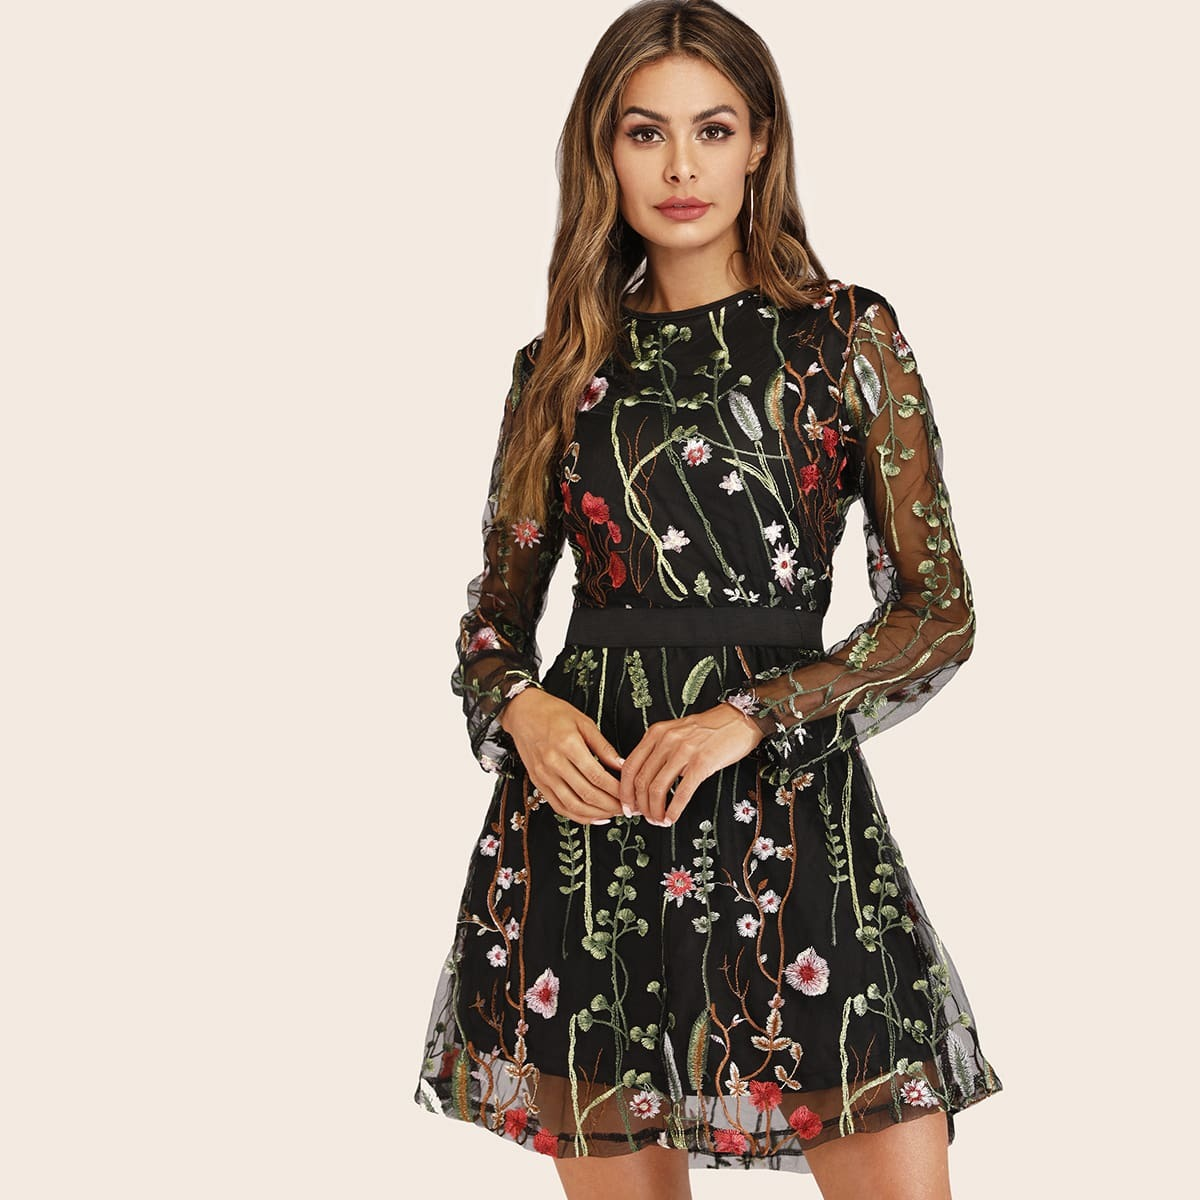 SHEIN coupon: Embroidered Mesh Overlay Dress